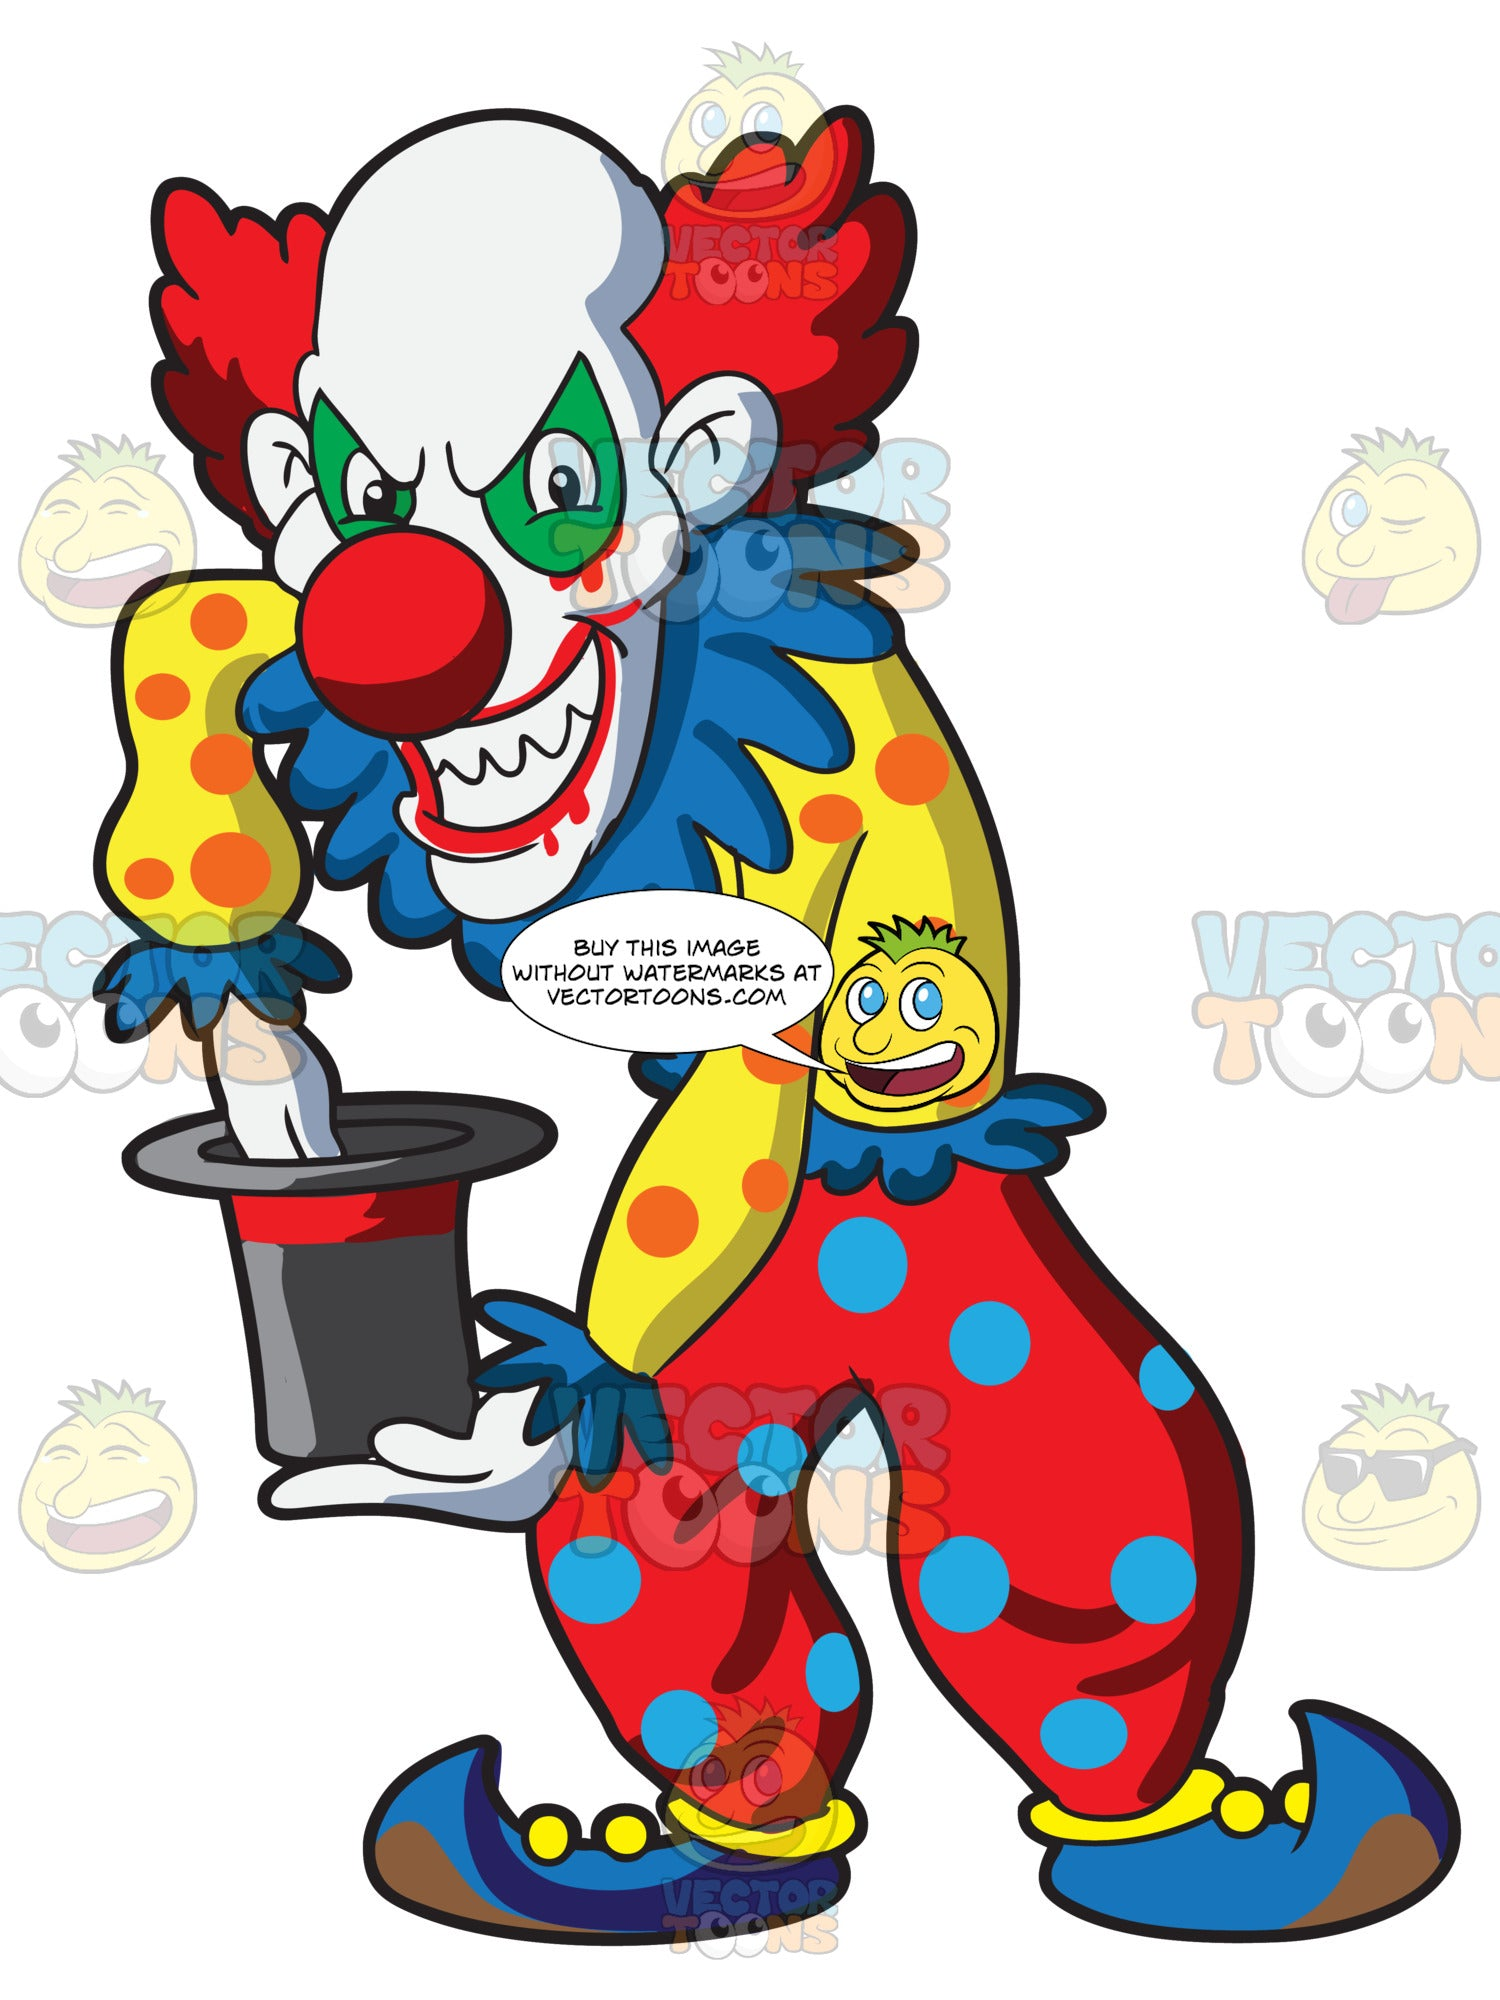 A Bald Creepy Clown Doing Magic